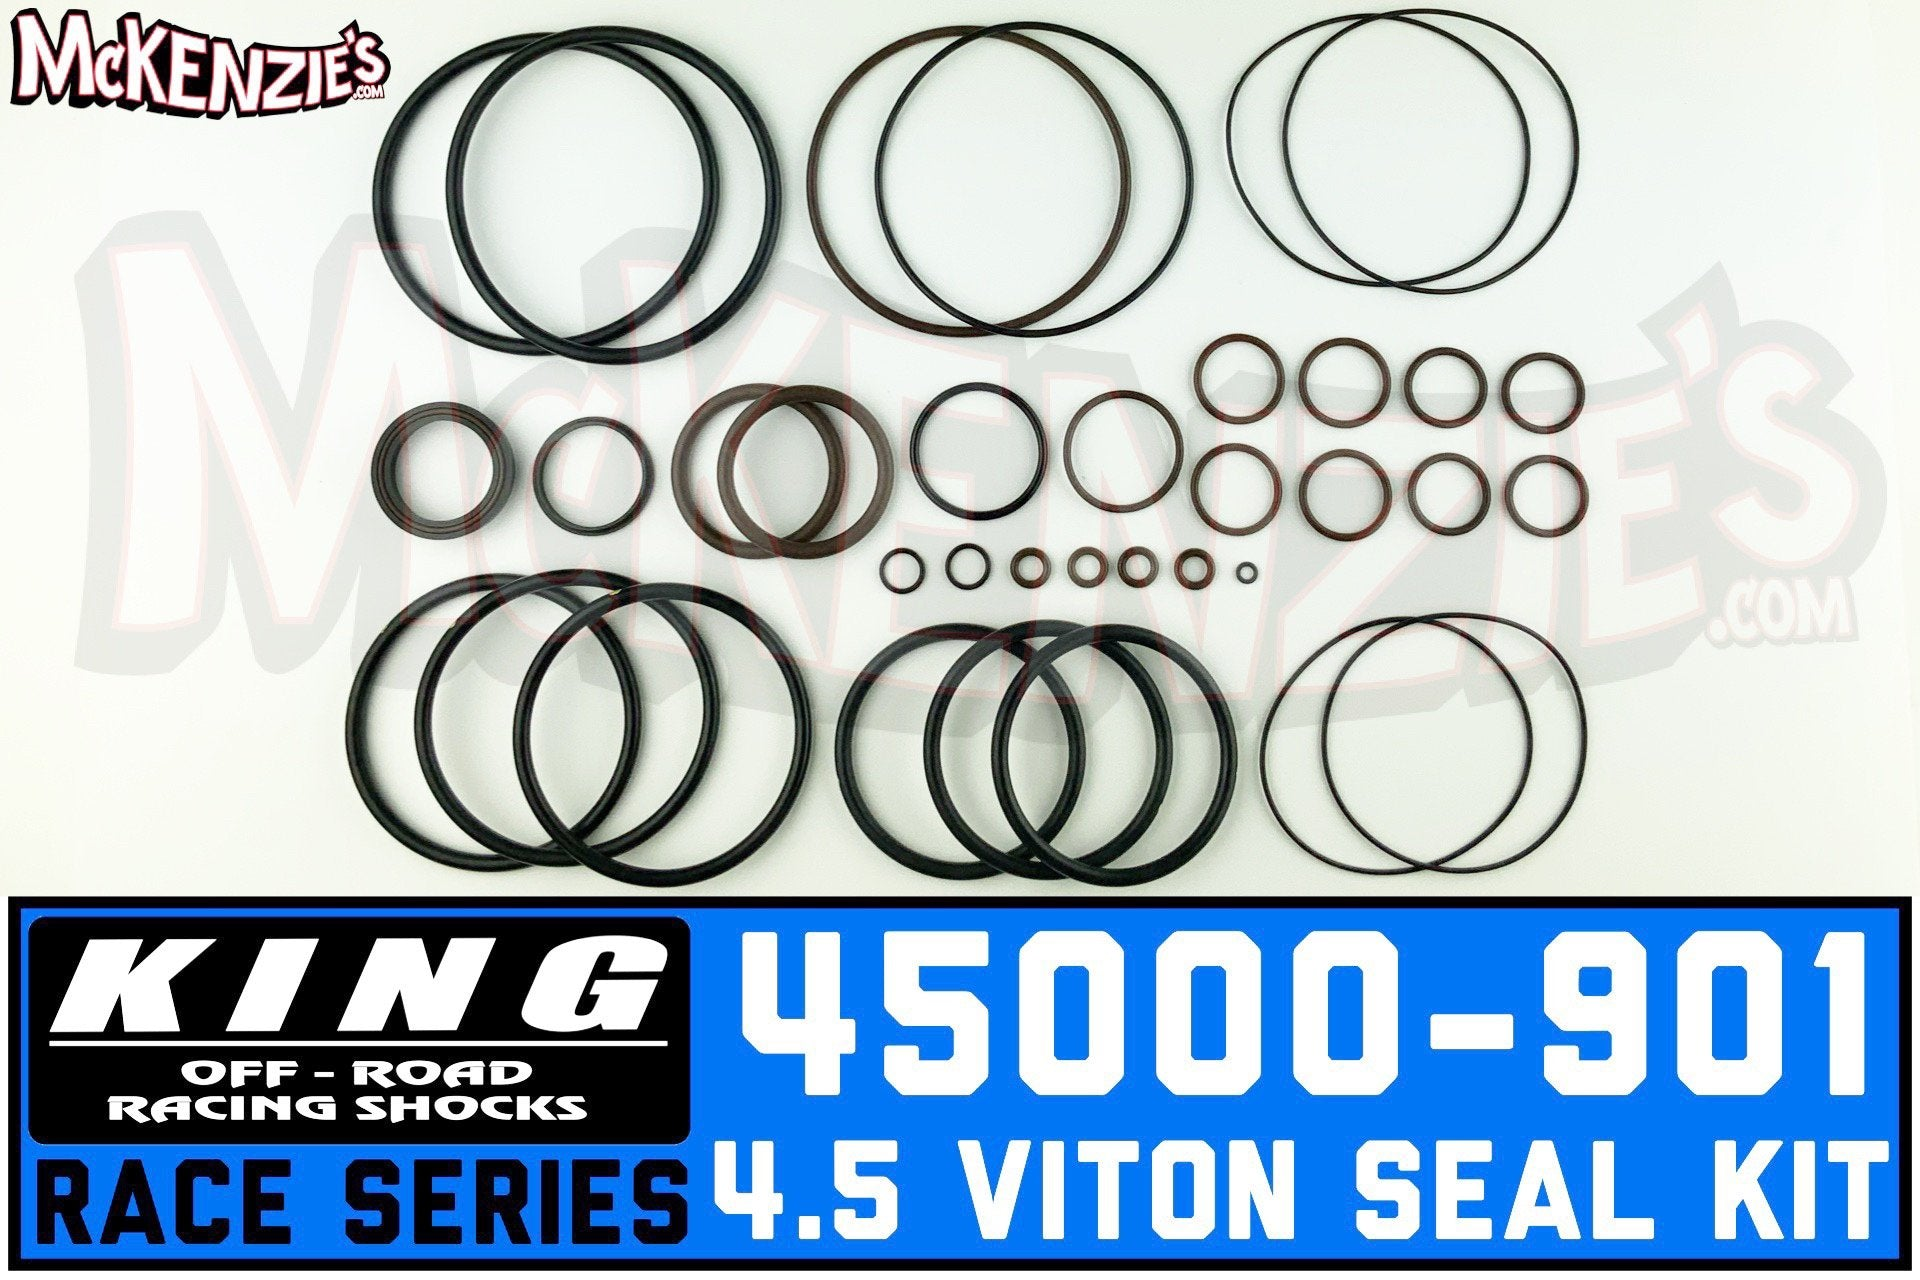 King Shocks 45000-901 | 4 5 Viton Seal Kit | Race Series